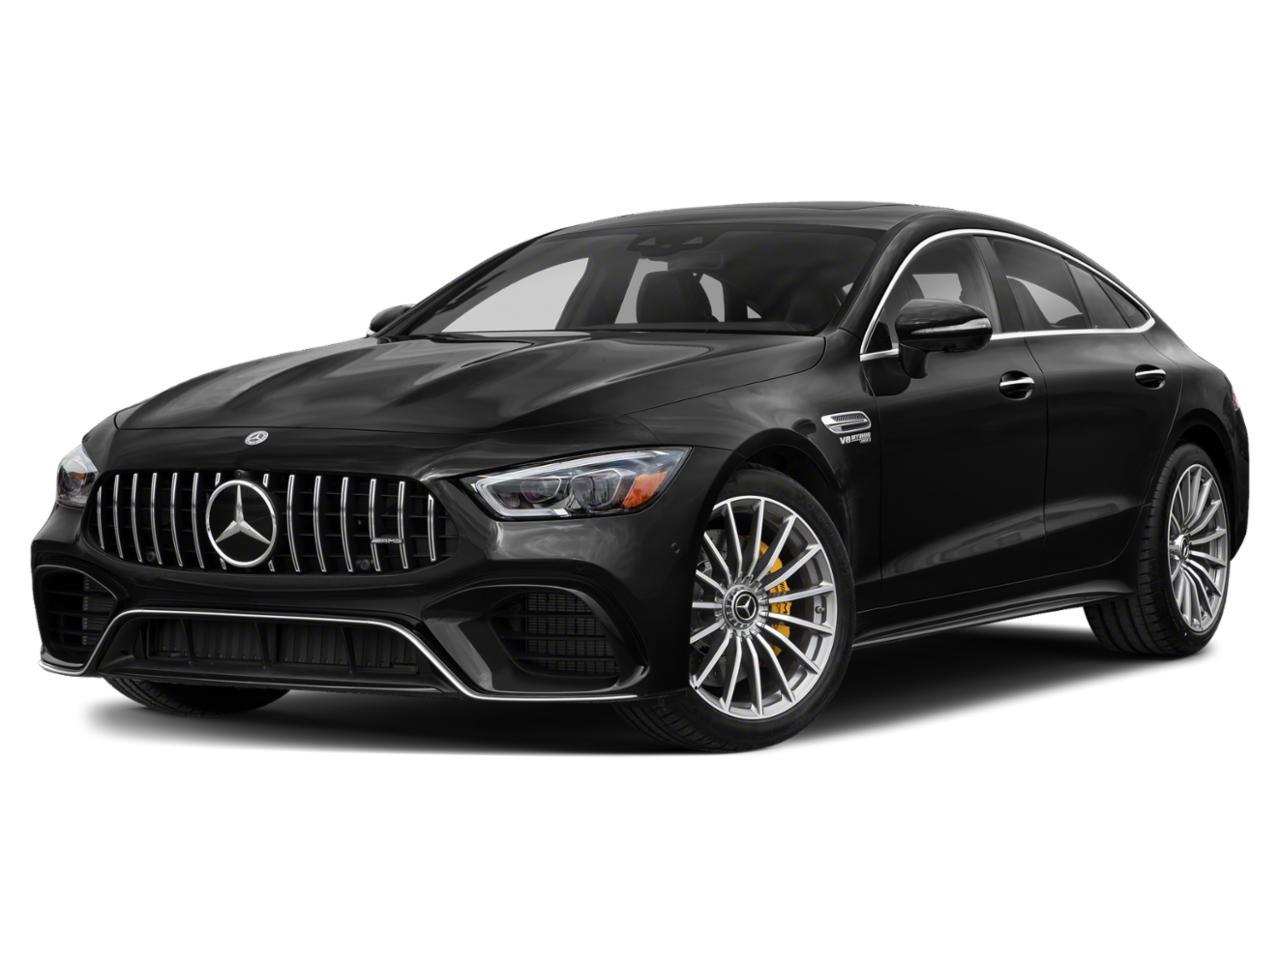 2021 Mercedes-Benz AMG GT Vehicle Photo in Houston, TX 77079